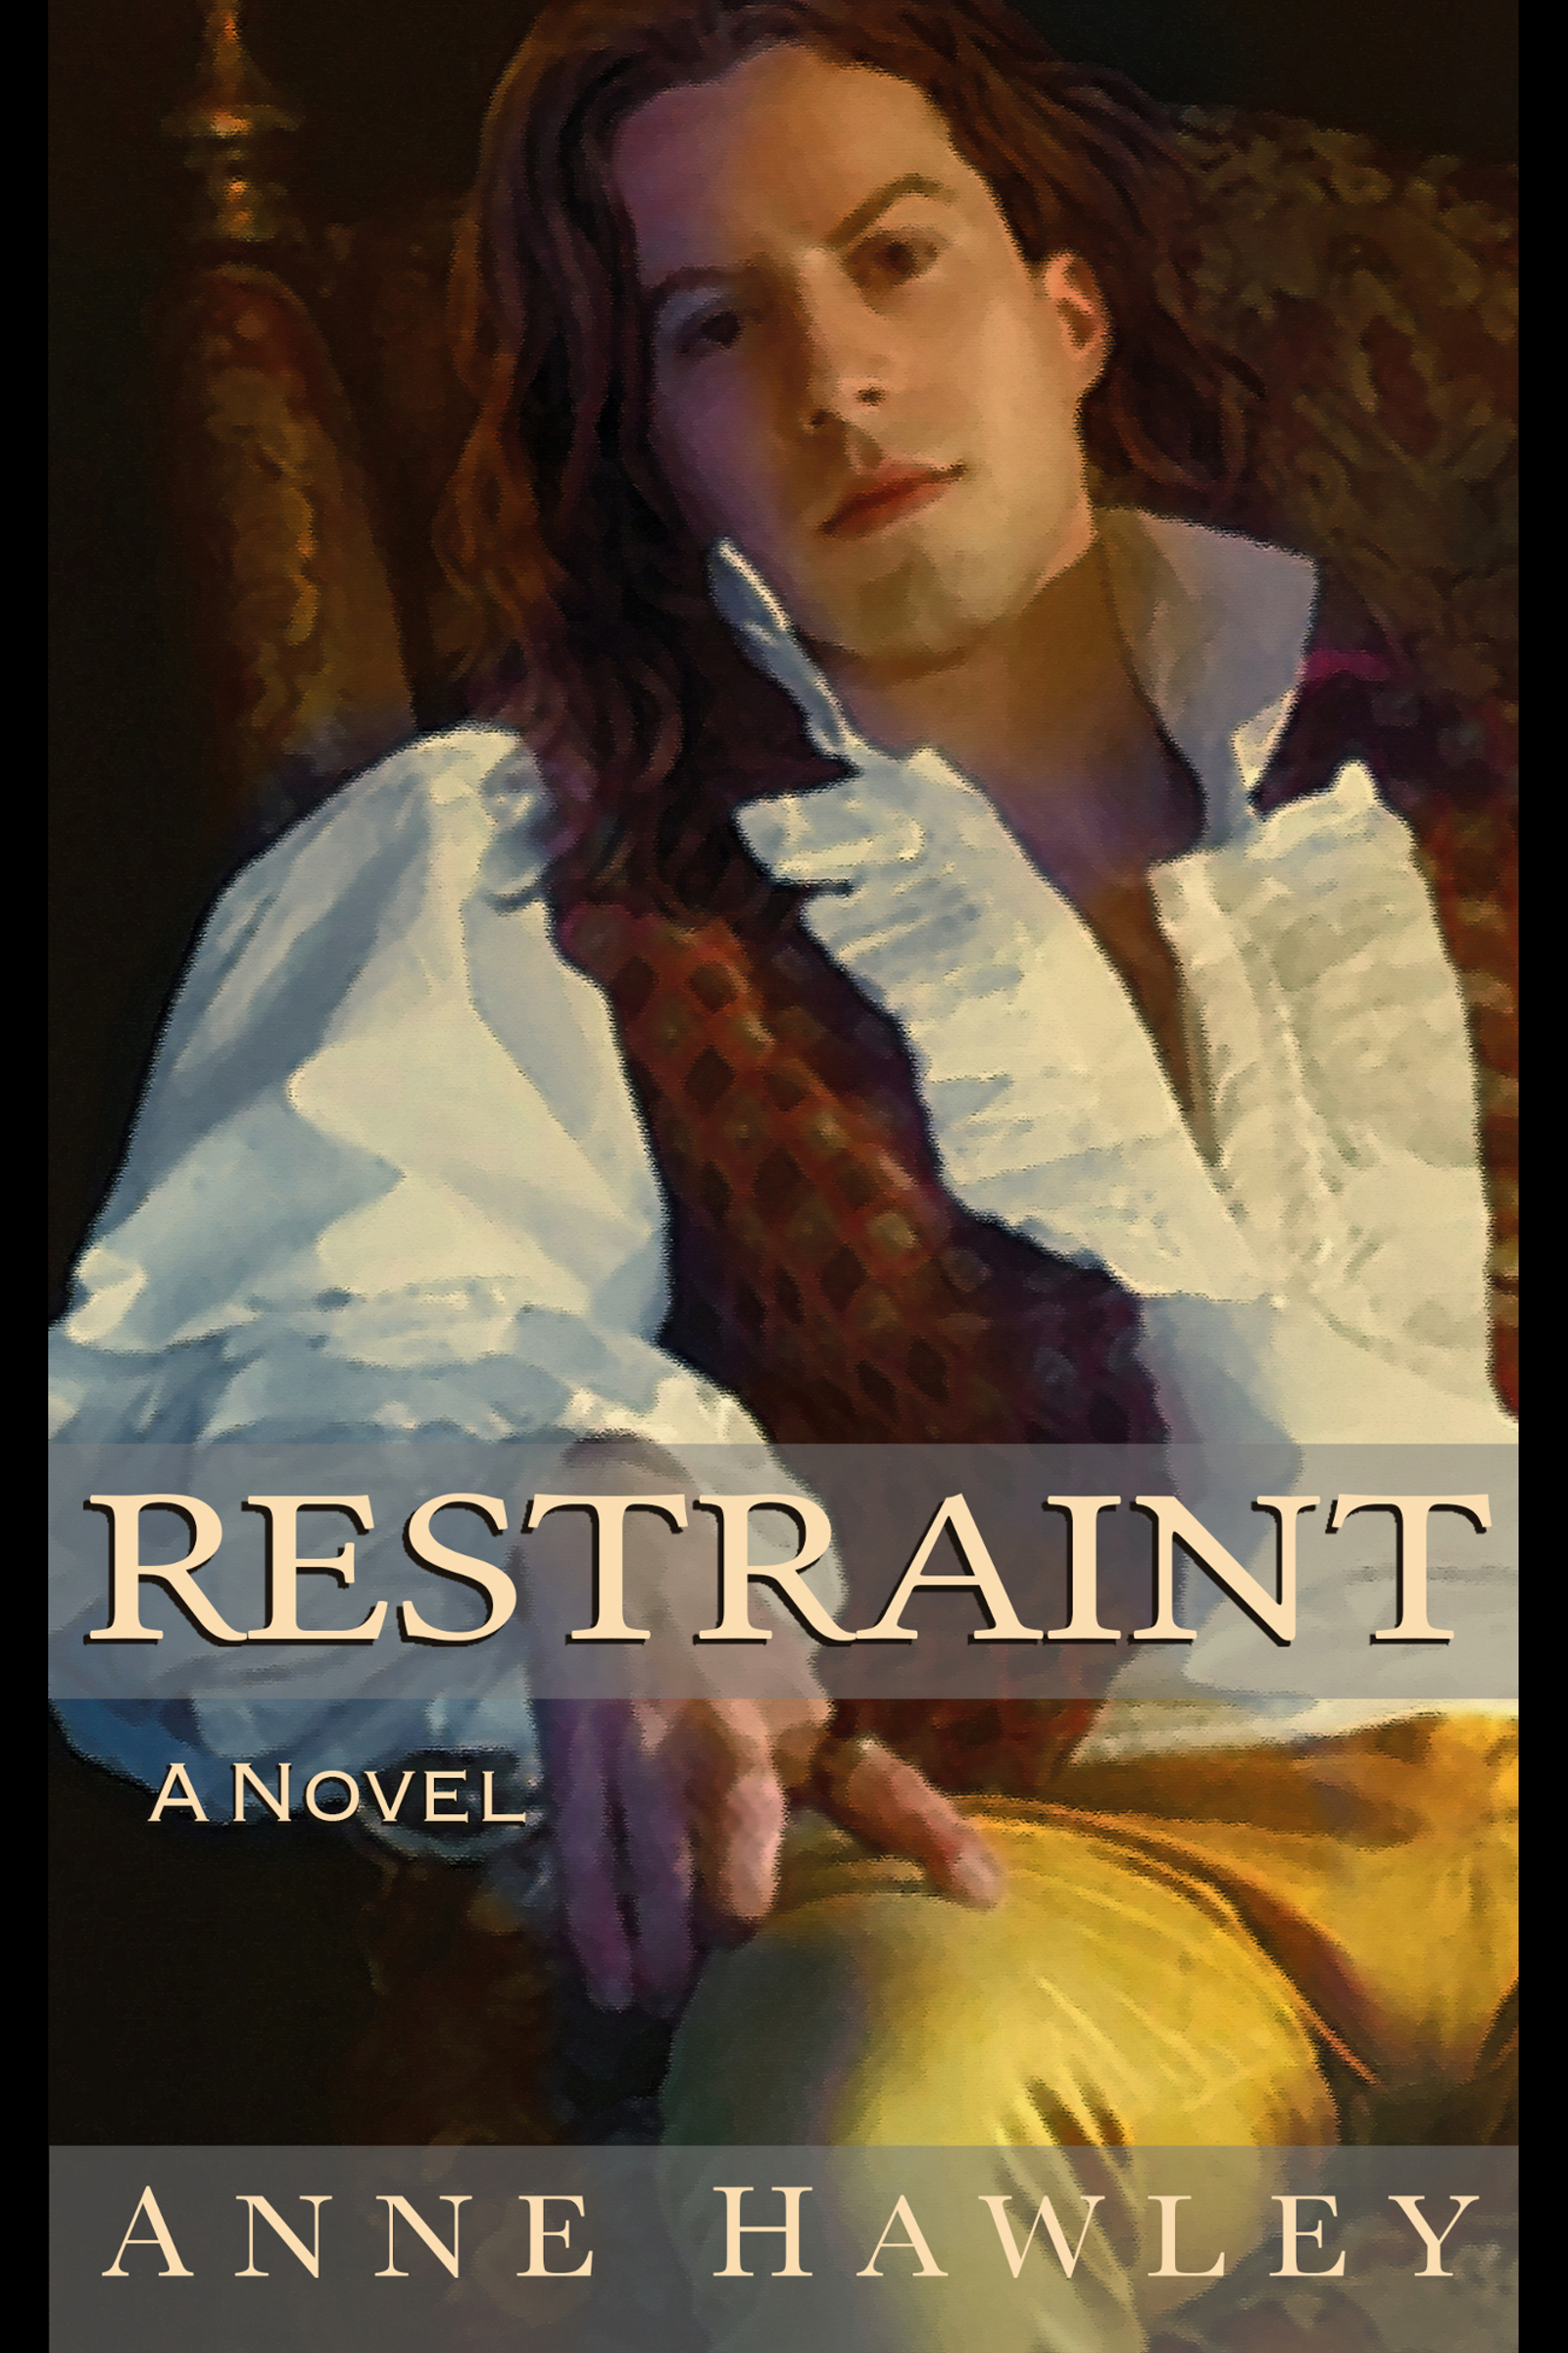 Cover of Restraint, a Novel, large, showing Tristan Hay, Viscount Penrith, a young Regency gentleman with long reddish hair, reclining in an armchair, wearing yellow buckskin breeches, a brocade waistcoat and a white ruffled shirt open at the neck.